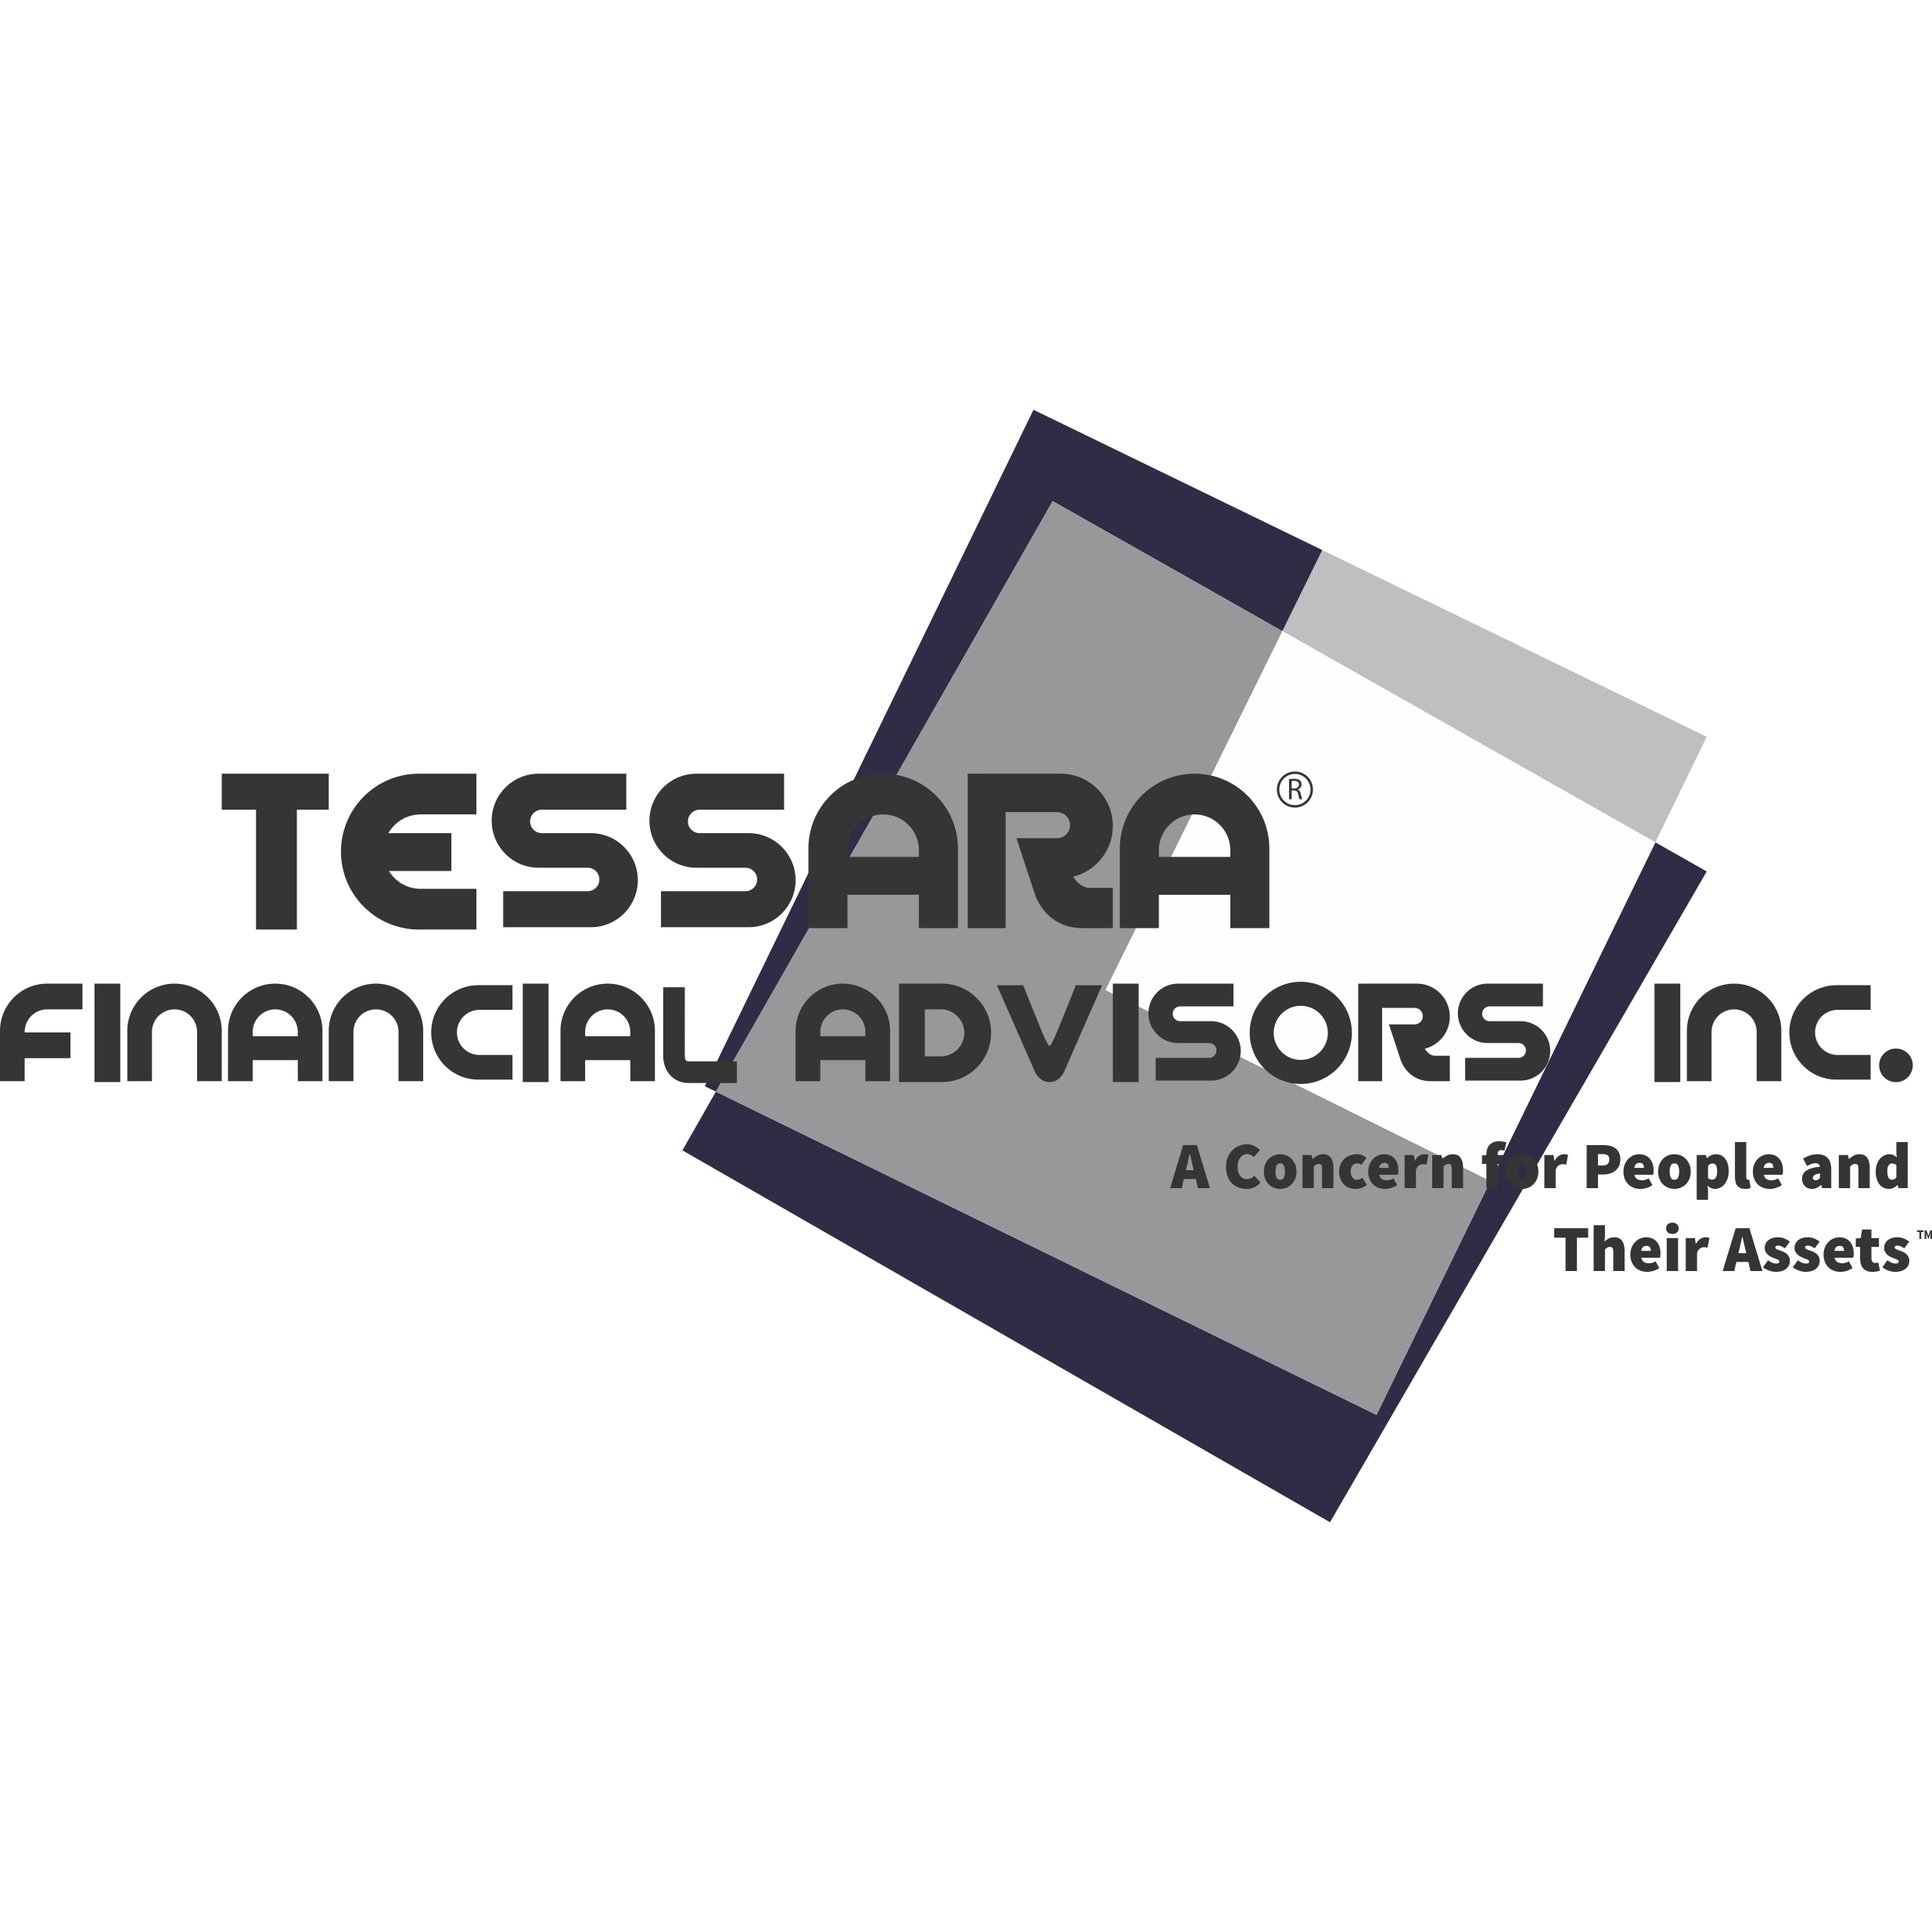 Tessara Financial Advisors, Inc.